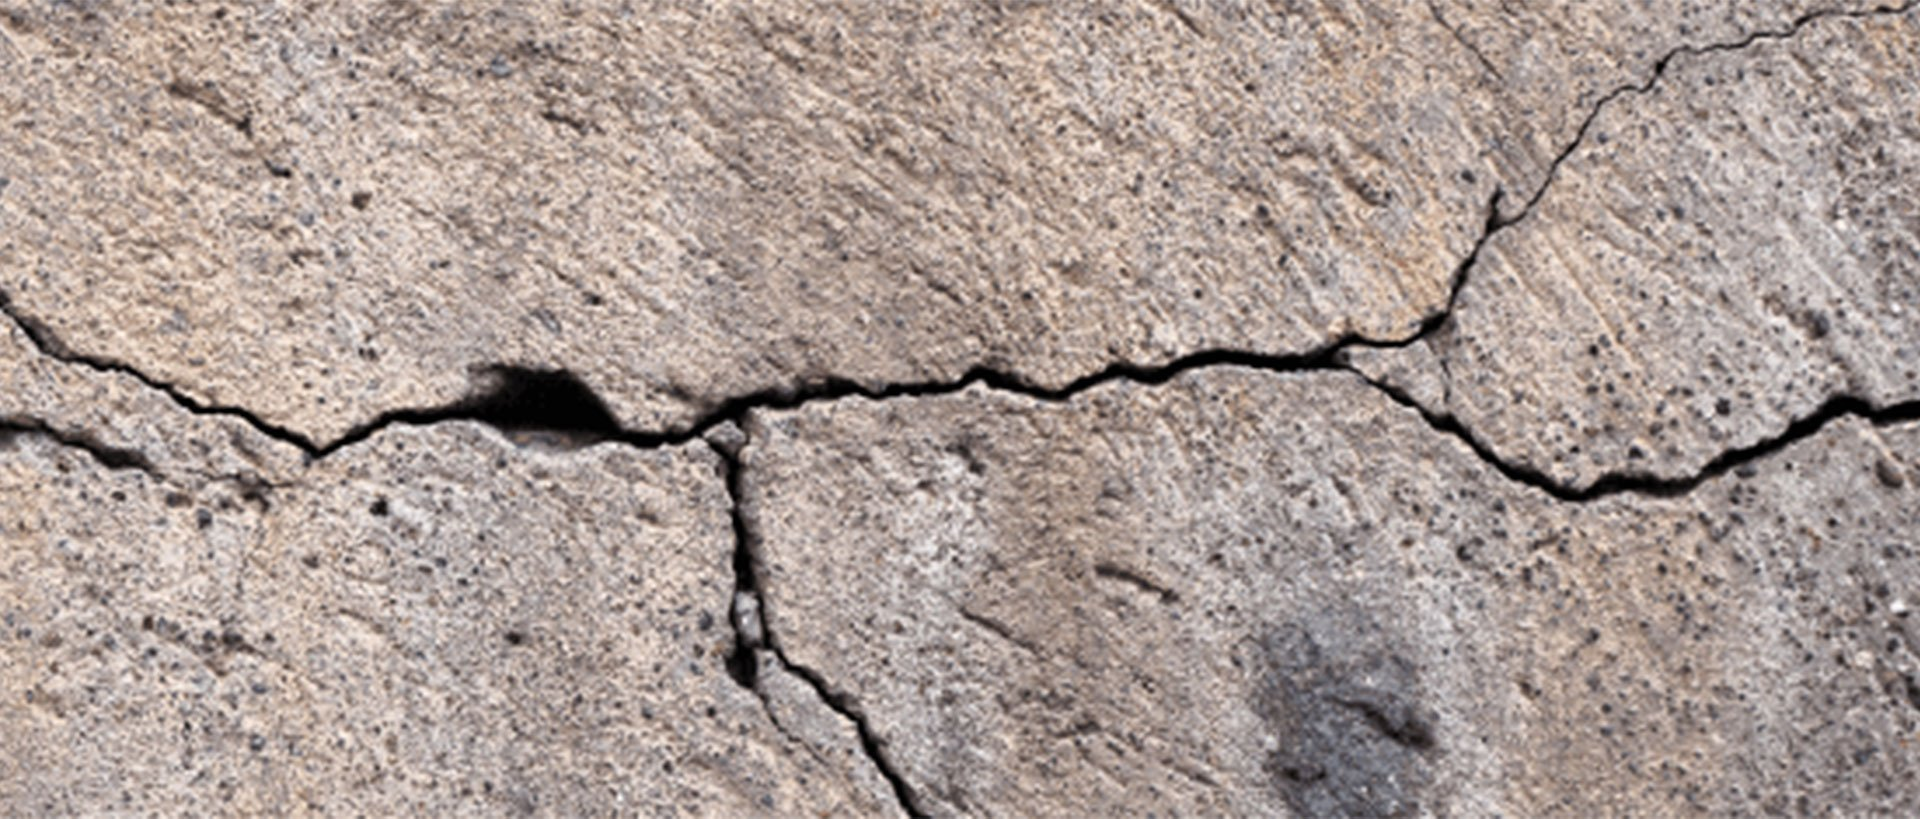 Dont know how to repair floor joists affordable foundation dont know how to repair floor joists affordable foundation home repair solutioingenieria Choice Image